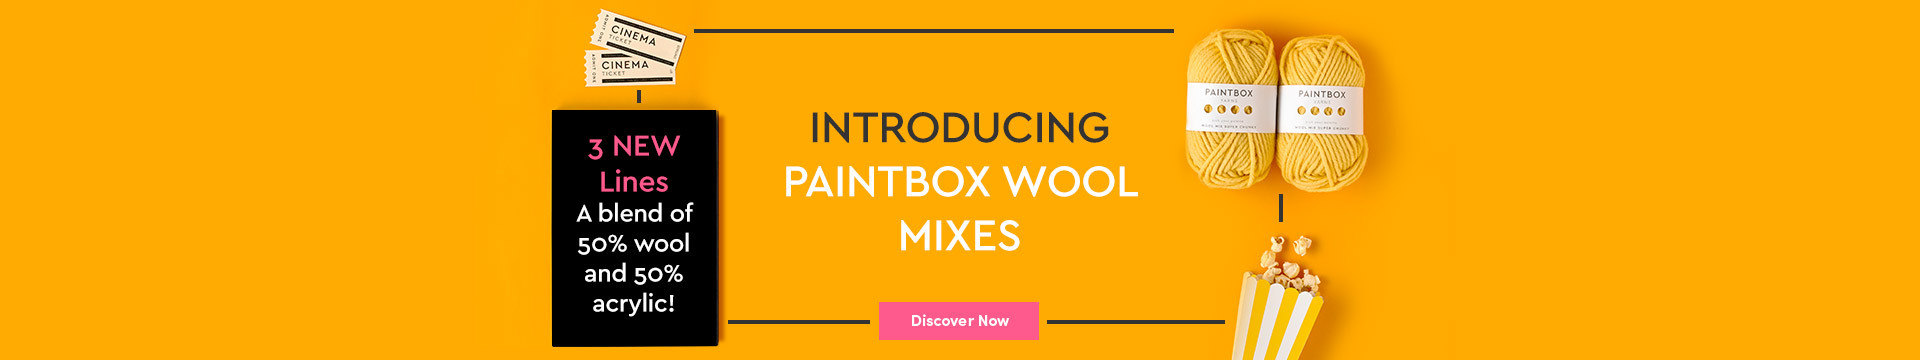 LC Marketing New Paintbox Wool Mix 2